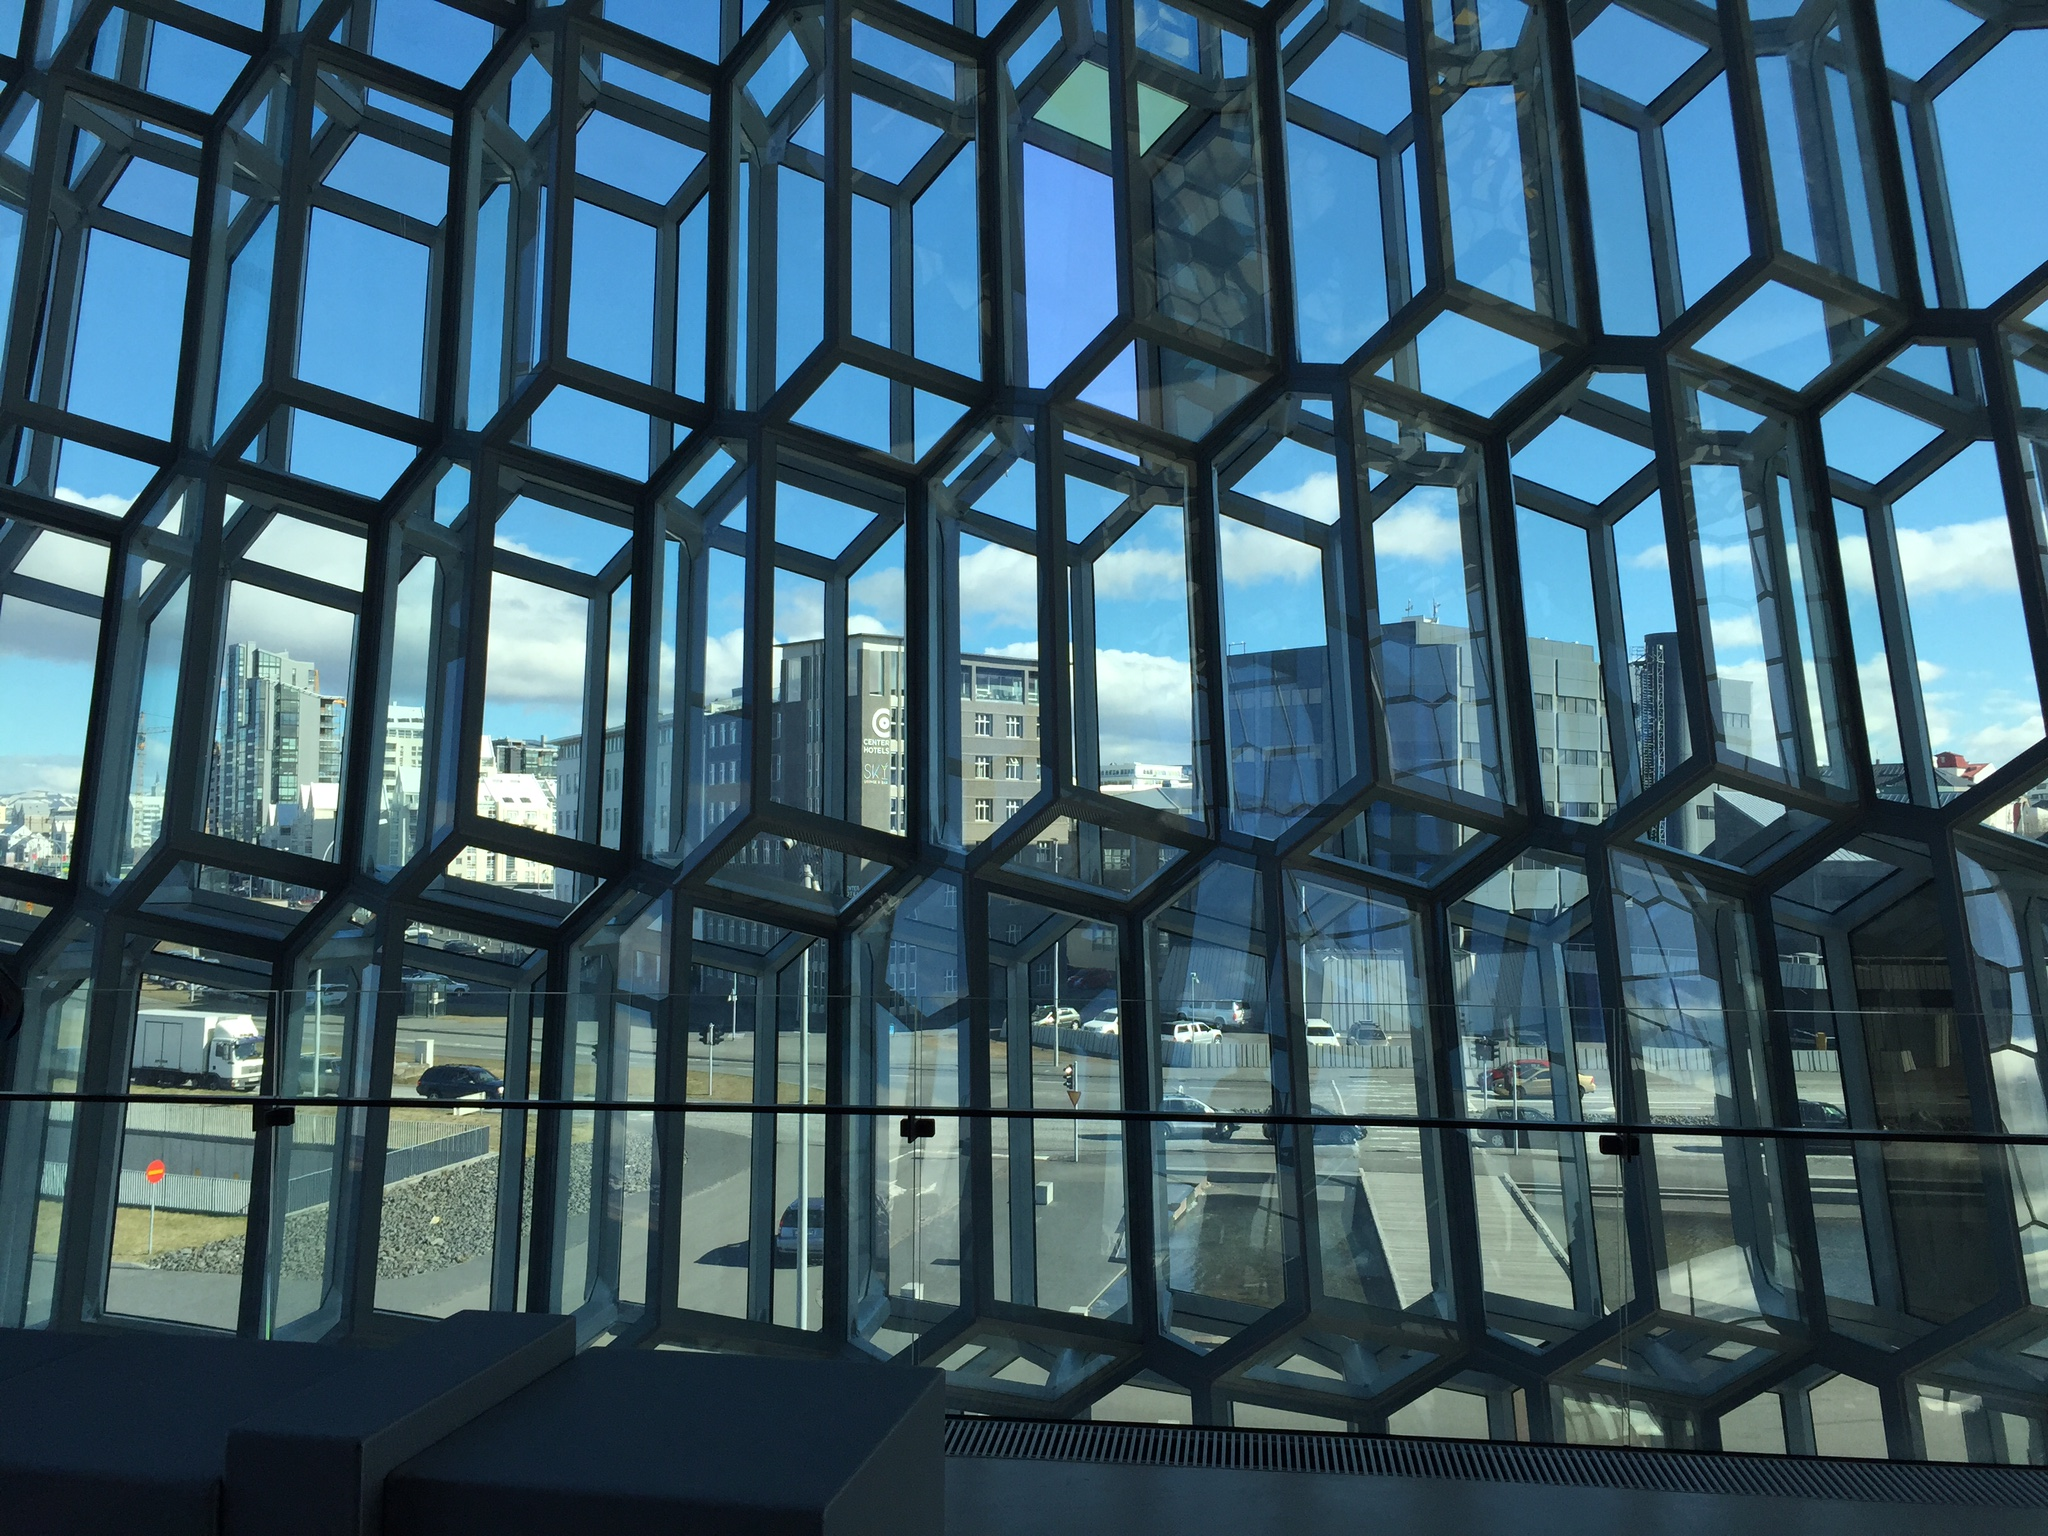 Central Bank of Iceland, seen through the glass facade of the Harpa concert and conference center.